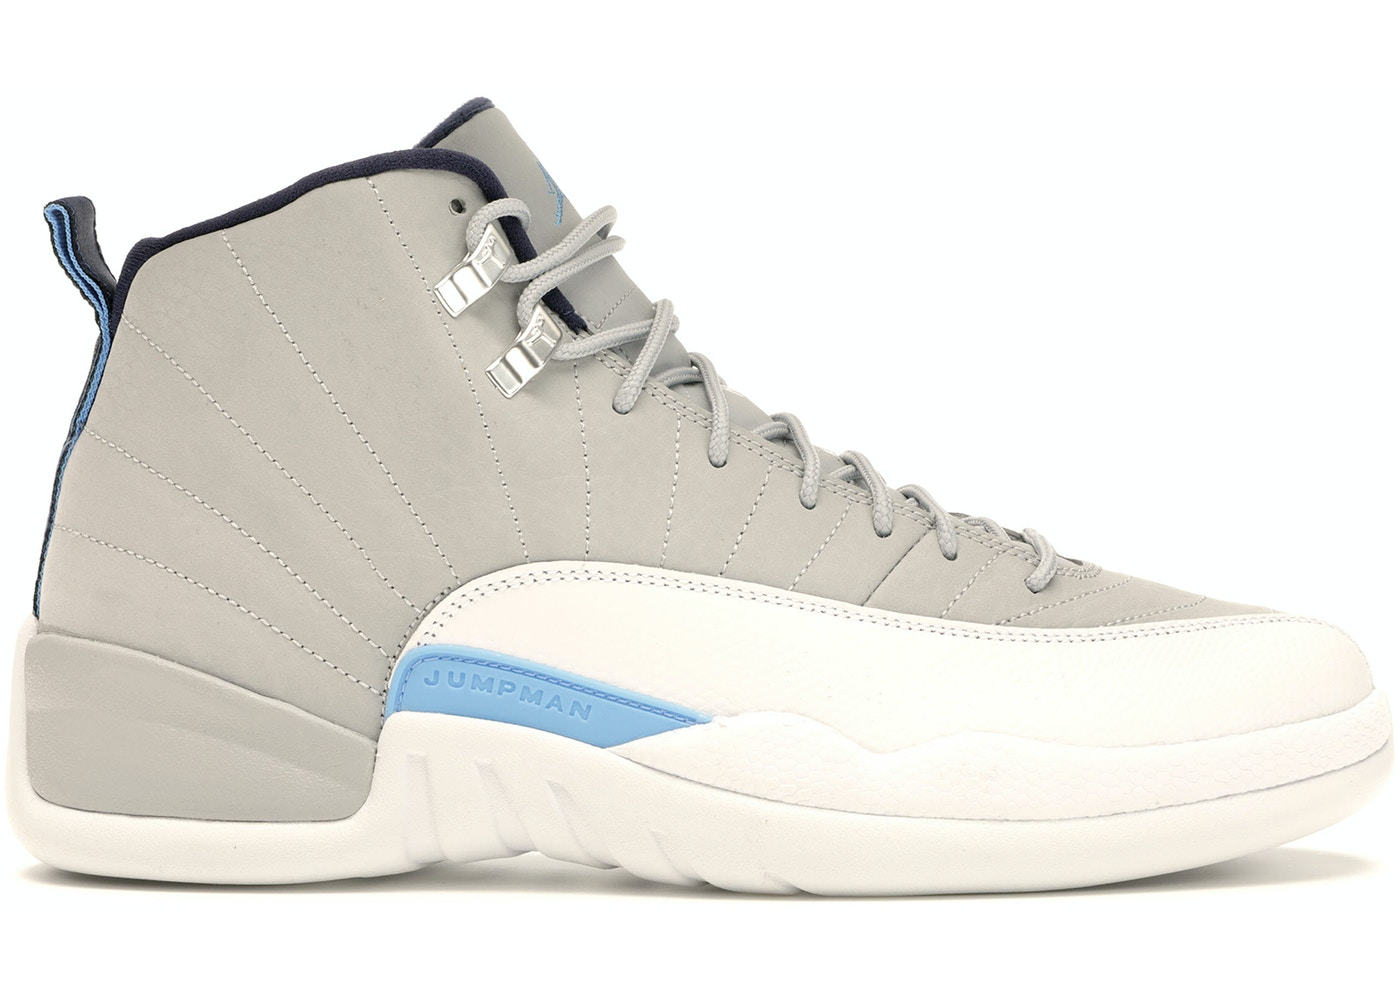 0a007975f57 Buy Air Jordan 12 Shoes & Deadstock Sneakers